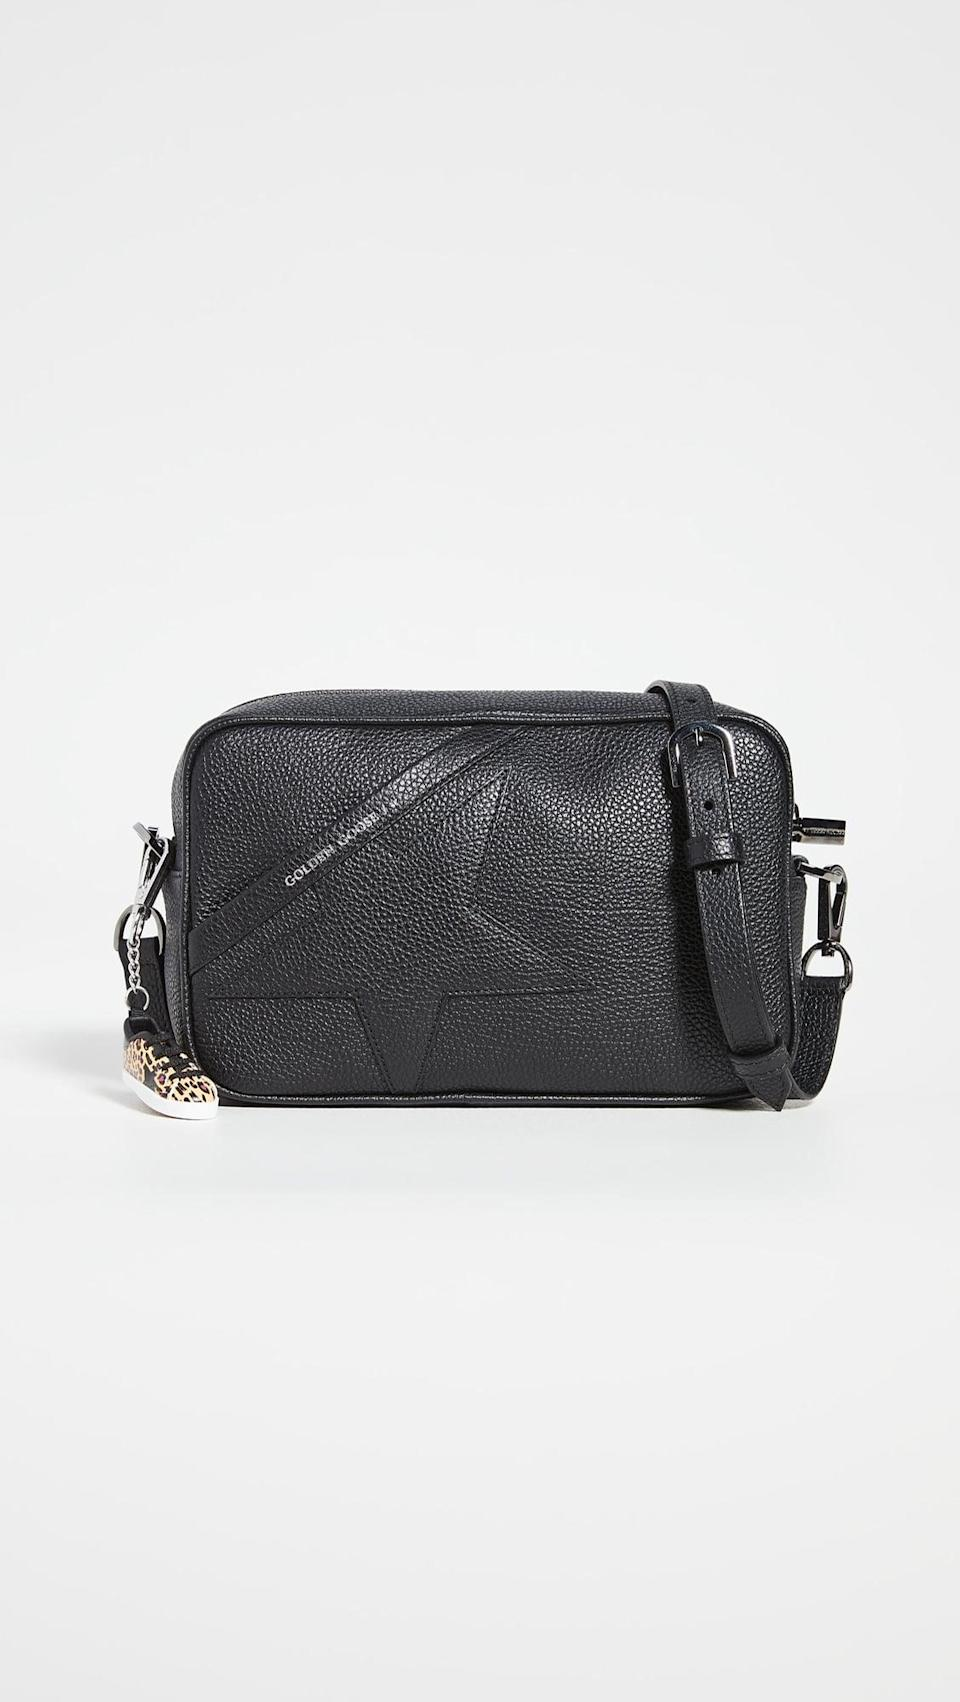 <p>This <span>Golden Goose Star Bag</span> ($530) is what we call classic with a twist, and we're very into it. How cute is the sneaker charm?</p>